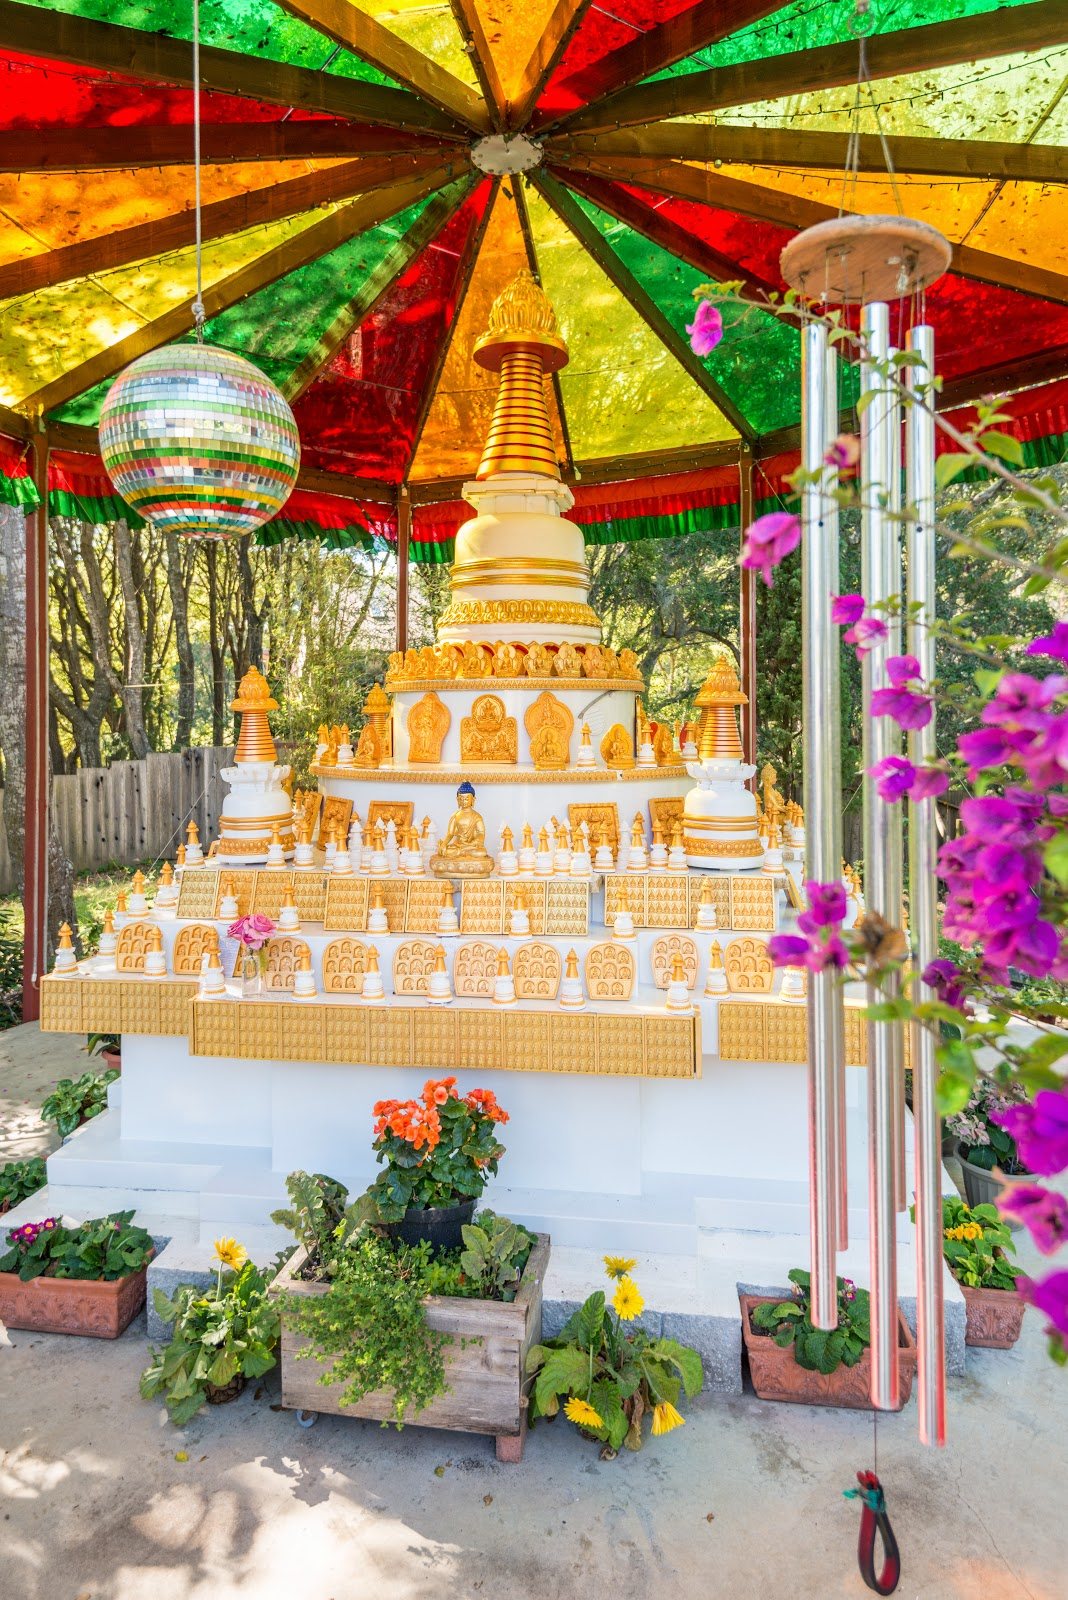 Stupa and extensive offerings at Kachoe Dechen Ling. Photo by Chris Majors.